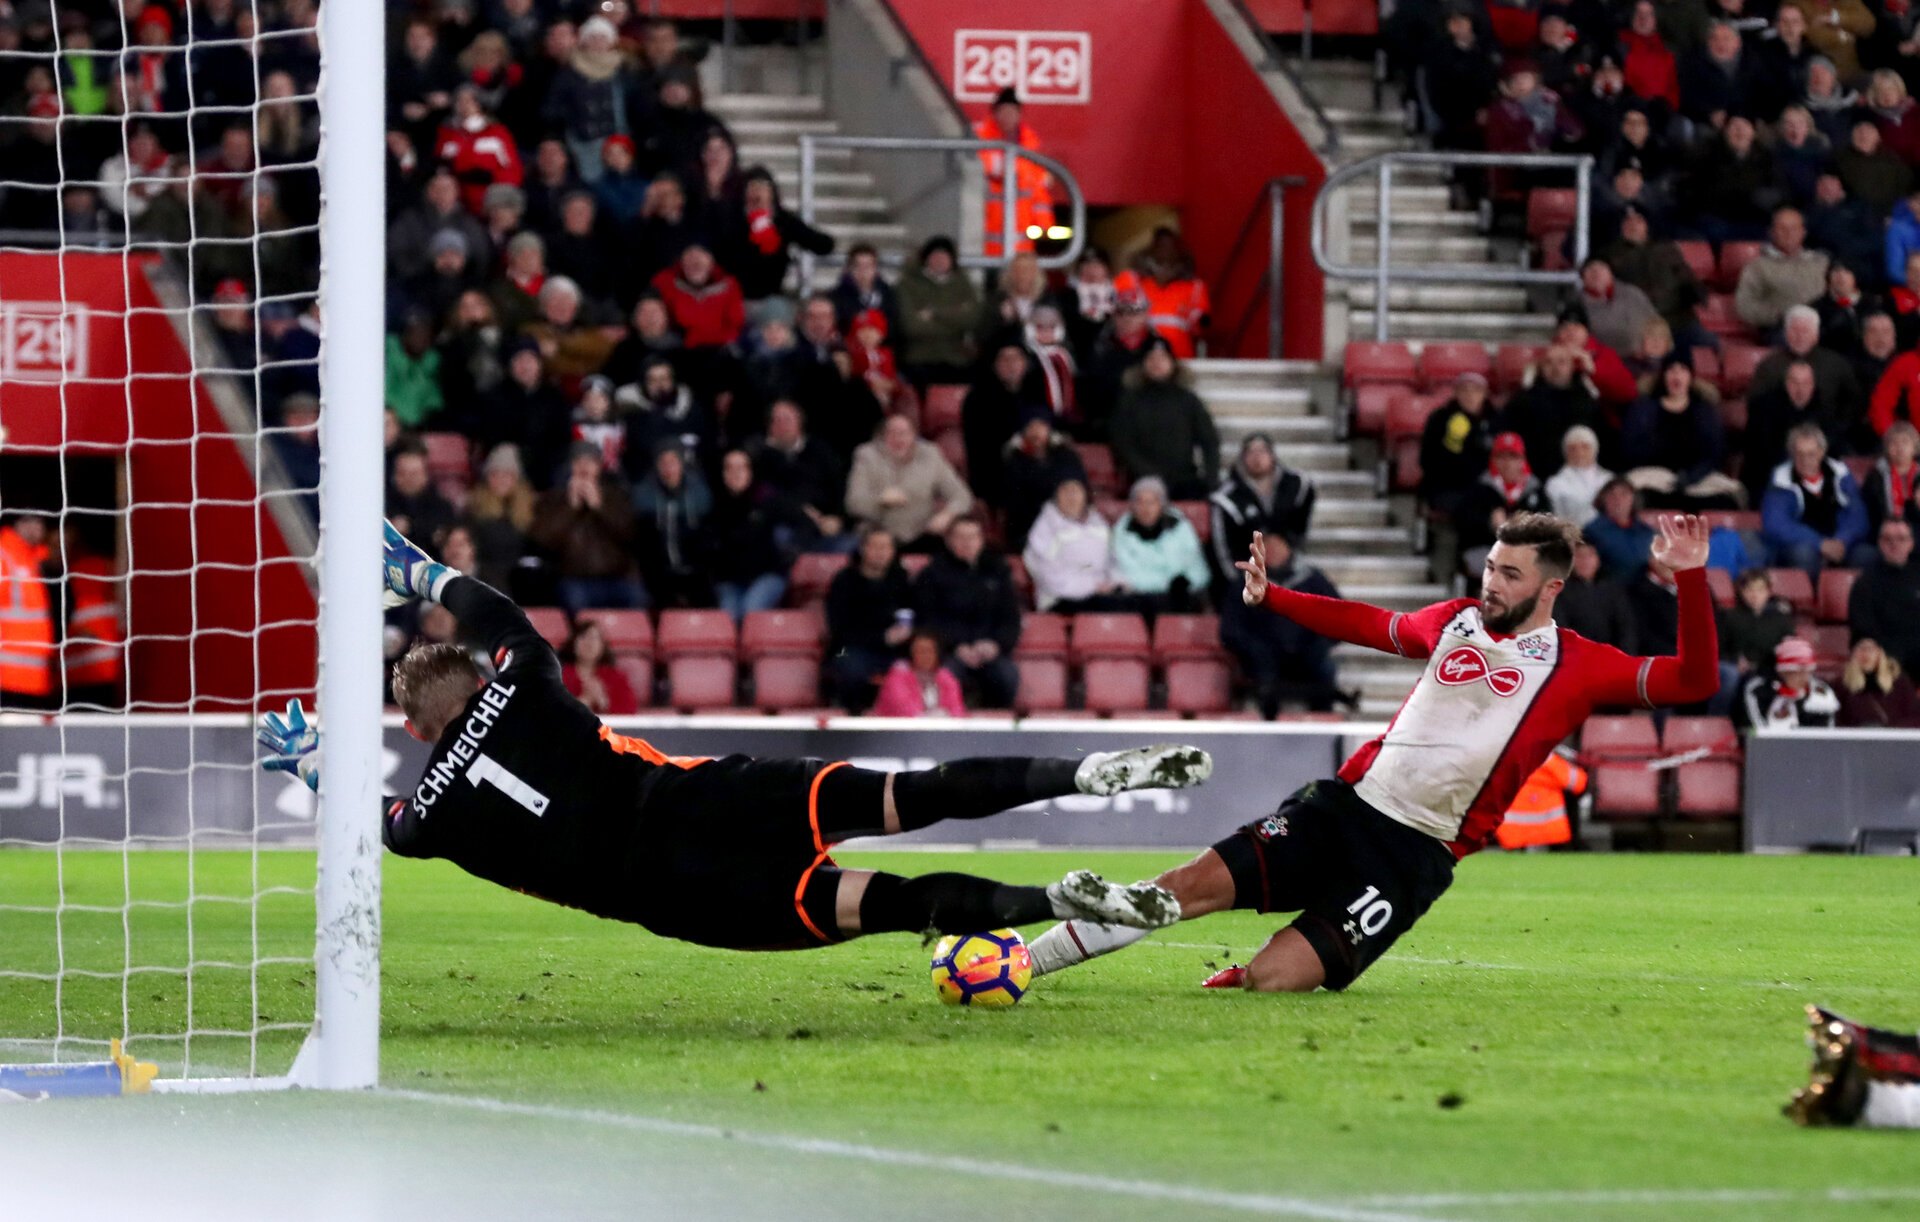 SOUTHAMPTON, ENGLAND - DECEMBER 13: Southampton's Charlie Austin is denied by Kasper Schmeichel during the Premier League match between Southampton and Leicester City at St Mary's Stadium on December 13, 2017 in Southampton, England. (Photo by Matt Watson/Southampton FC via Getty Images)